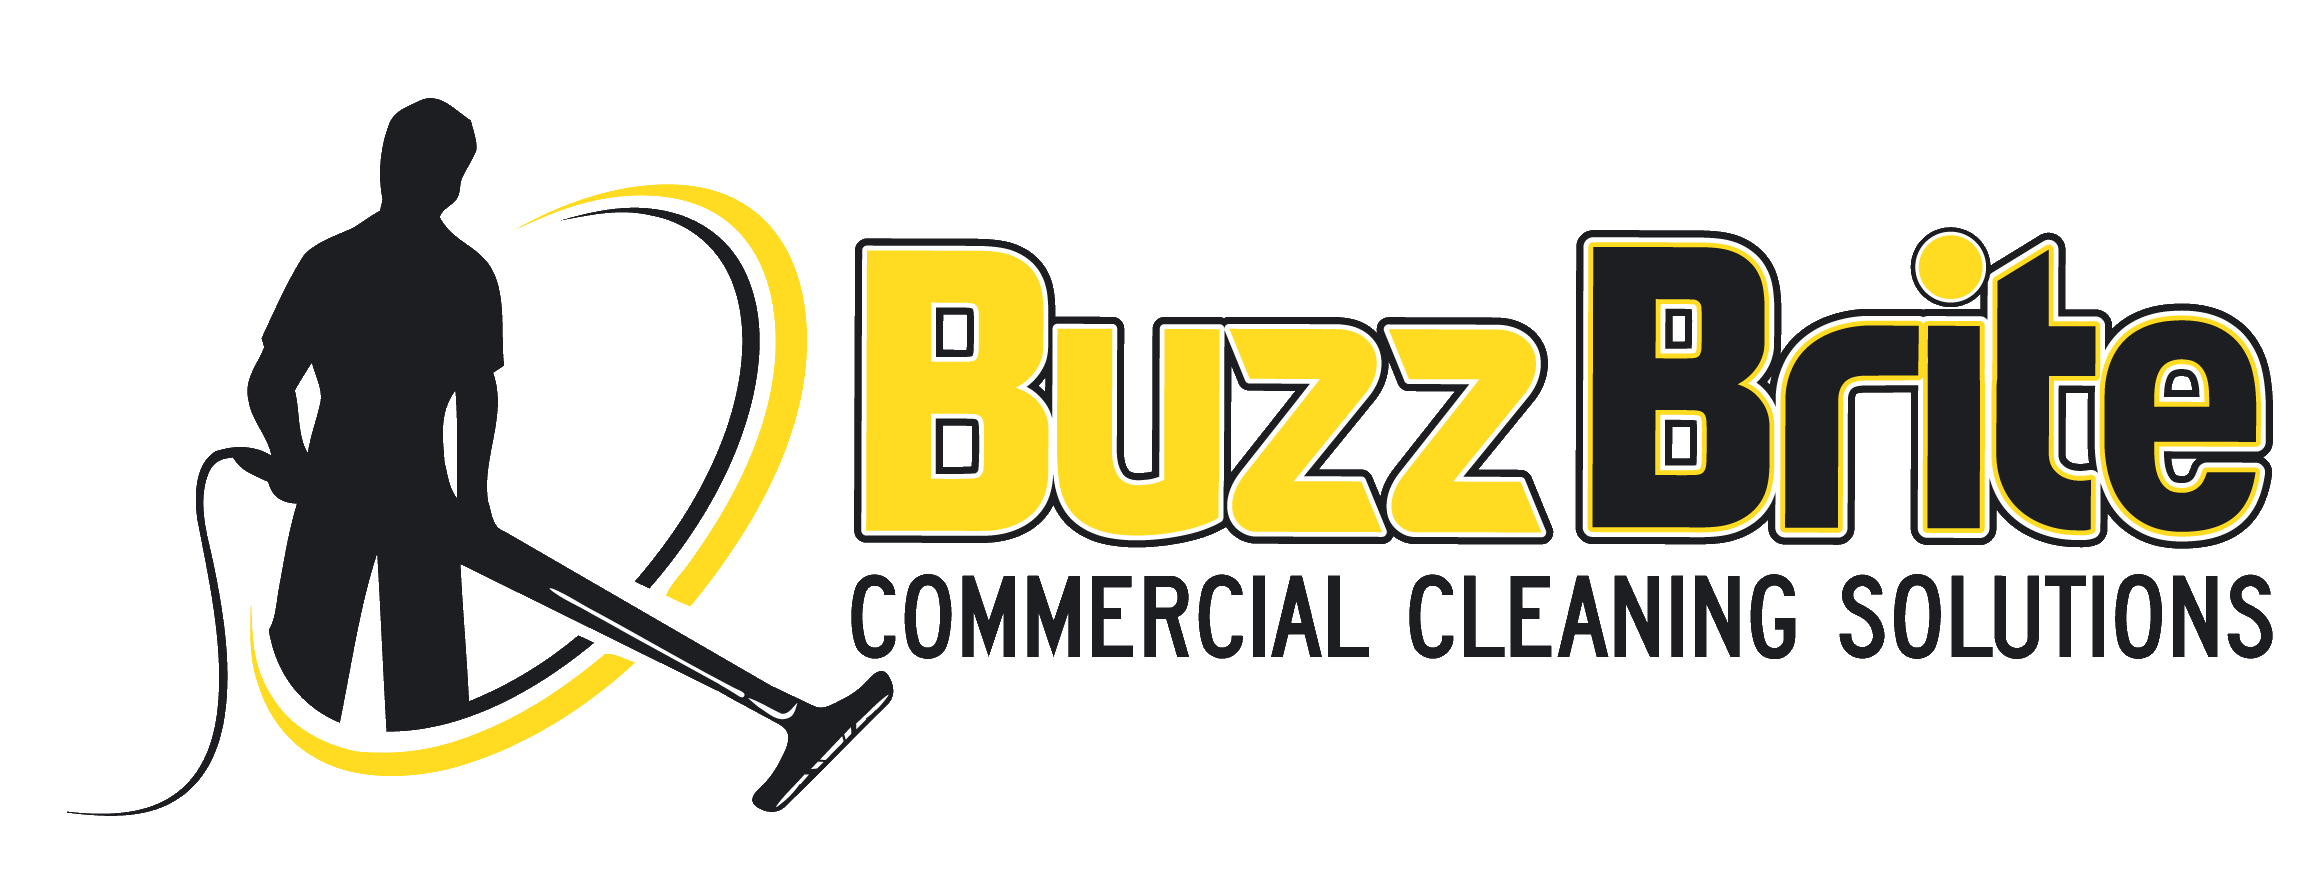 Buzz Brite Cleaning Solutions